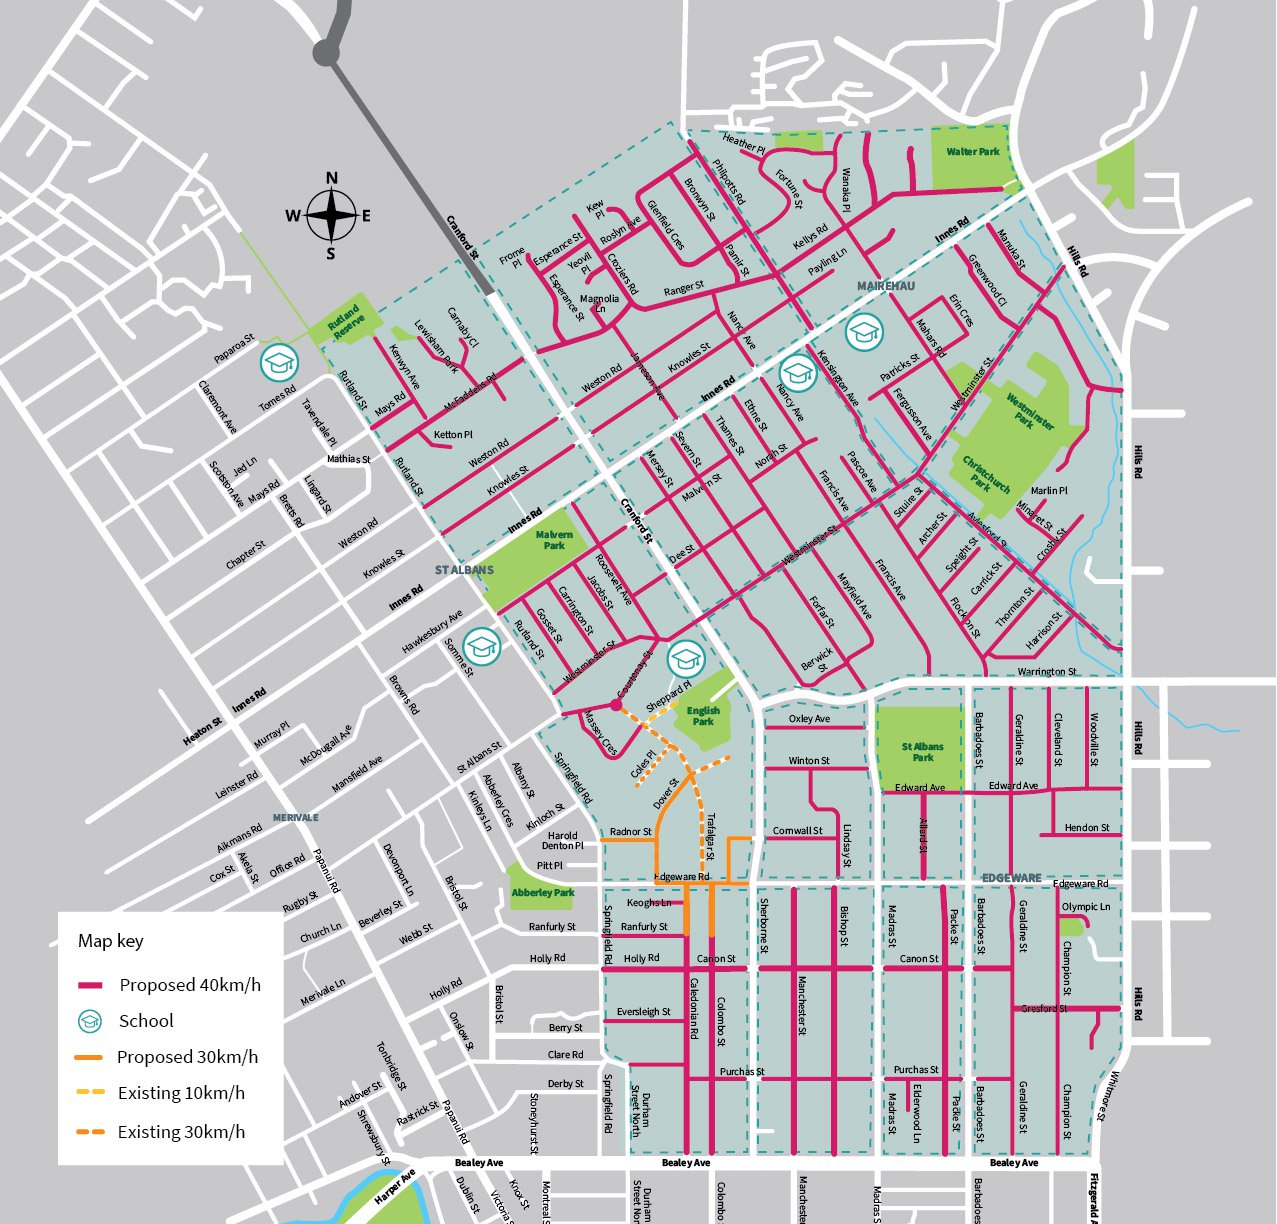 Streets within the area shaded green are going to have a 40km/h speed limit. Source: Newsline